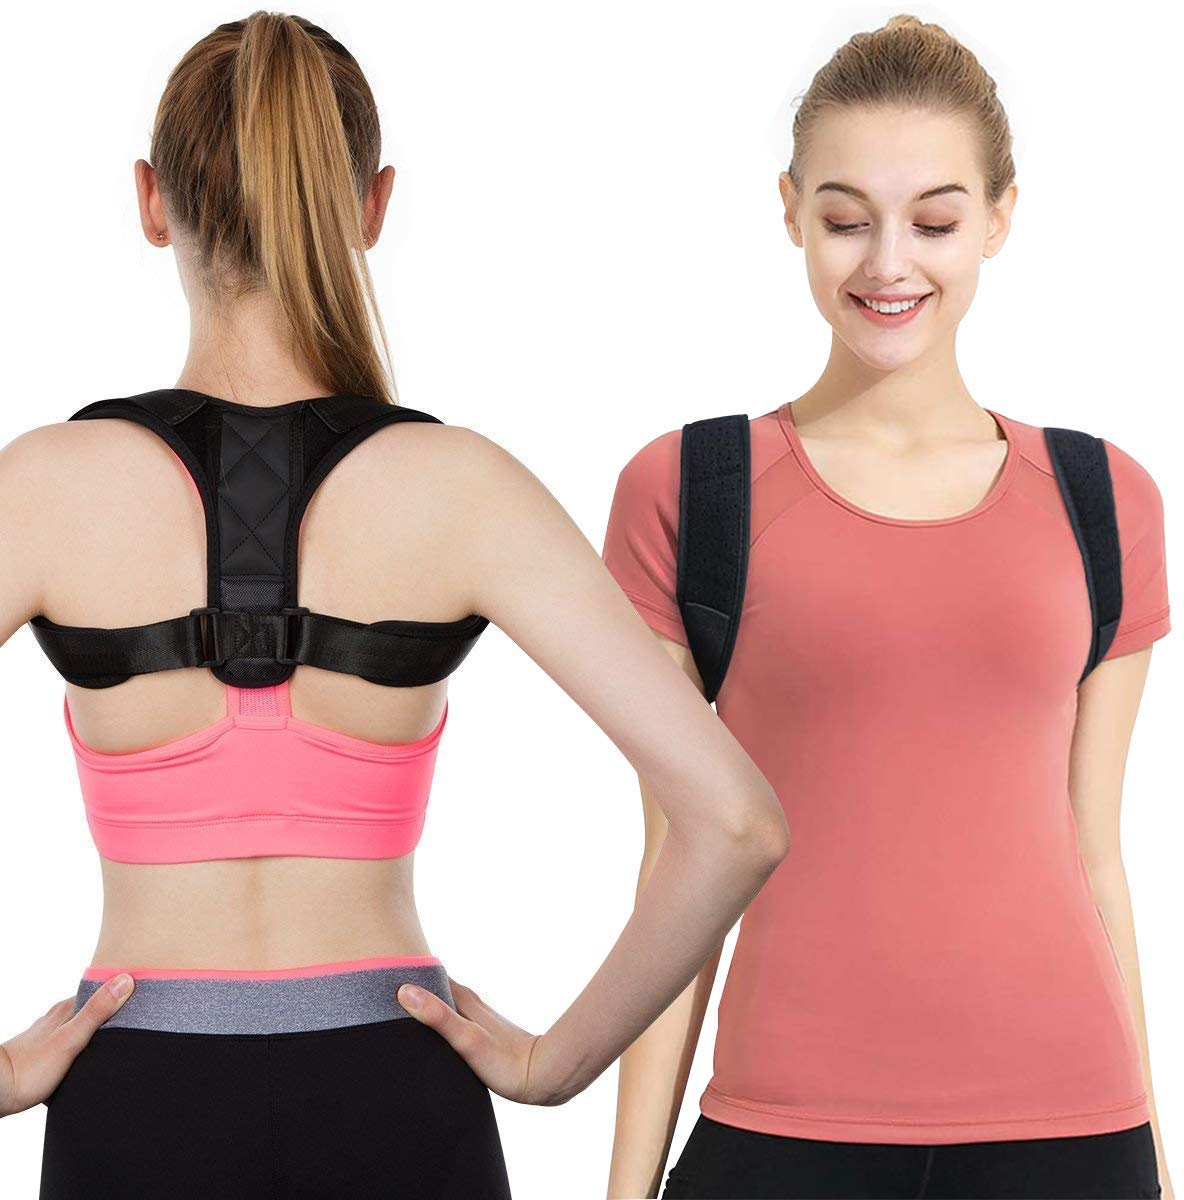 Therapy Posture Corrector Under Clothes f